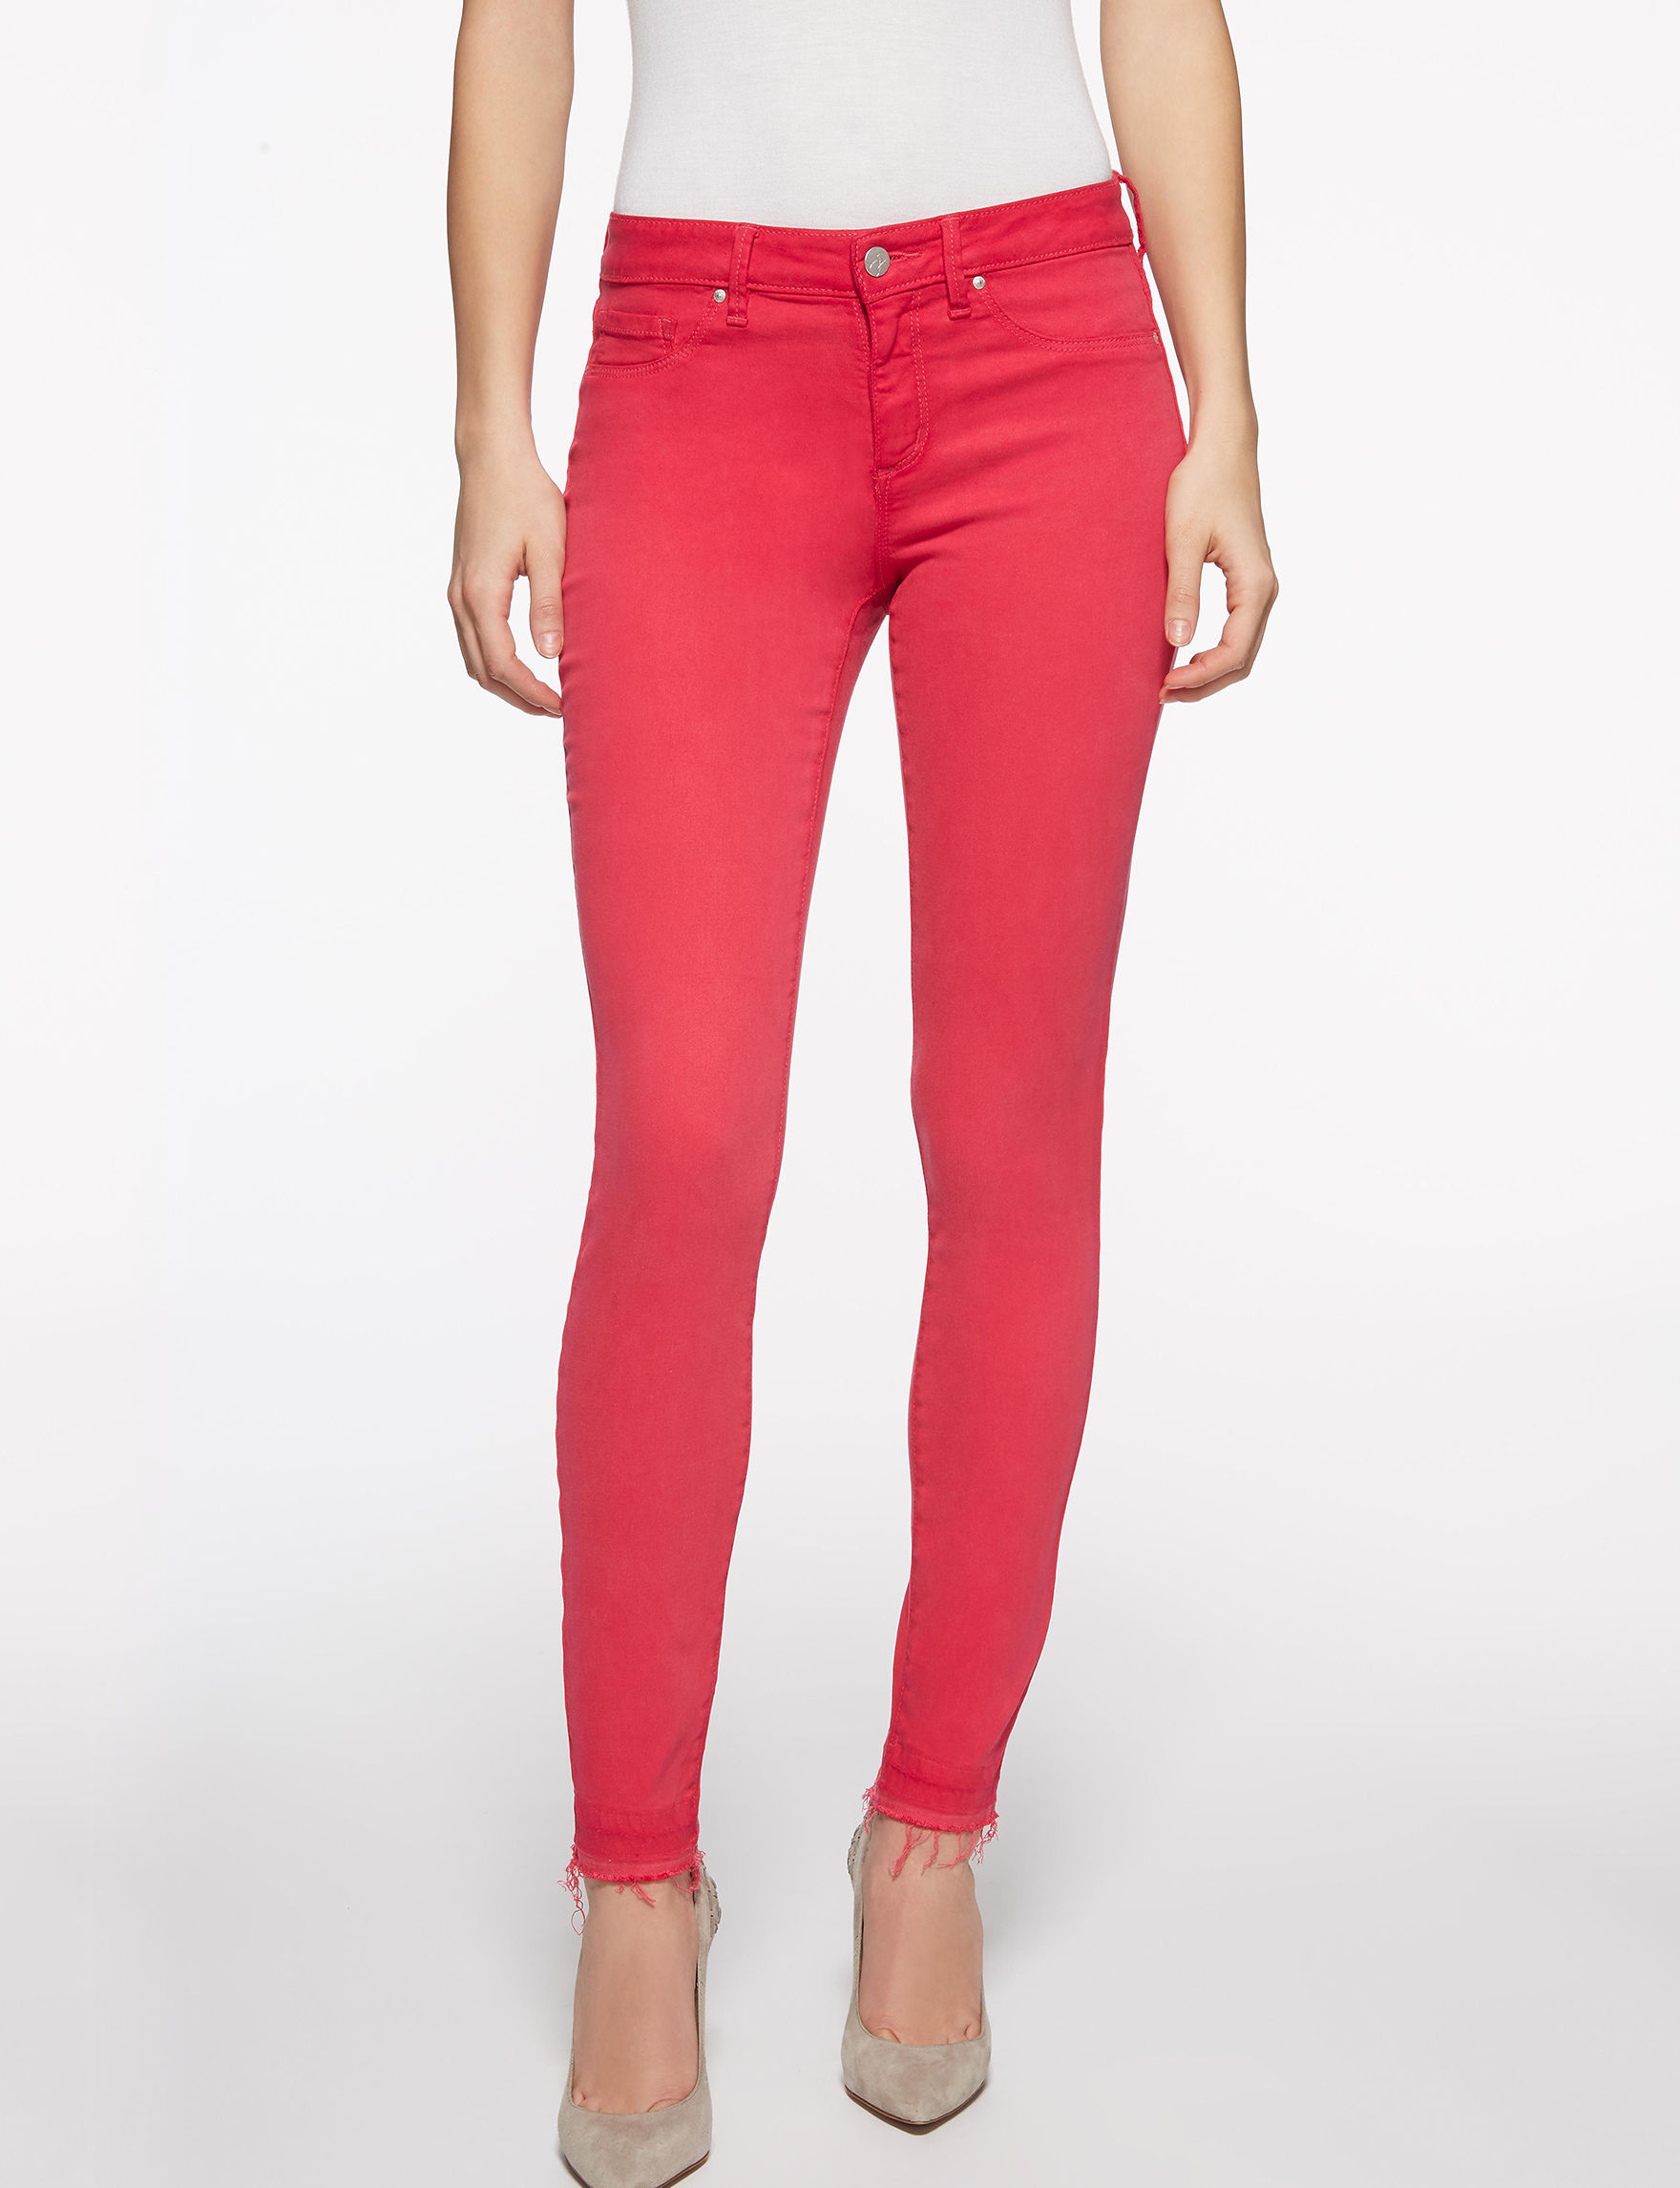 Jessica Simpson Red Skinny